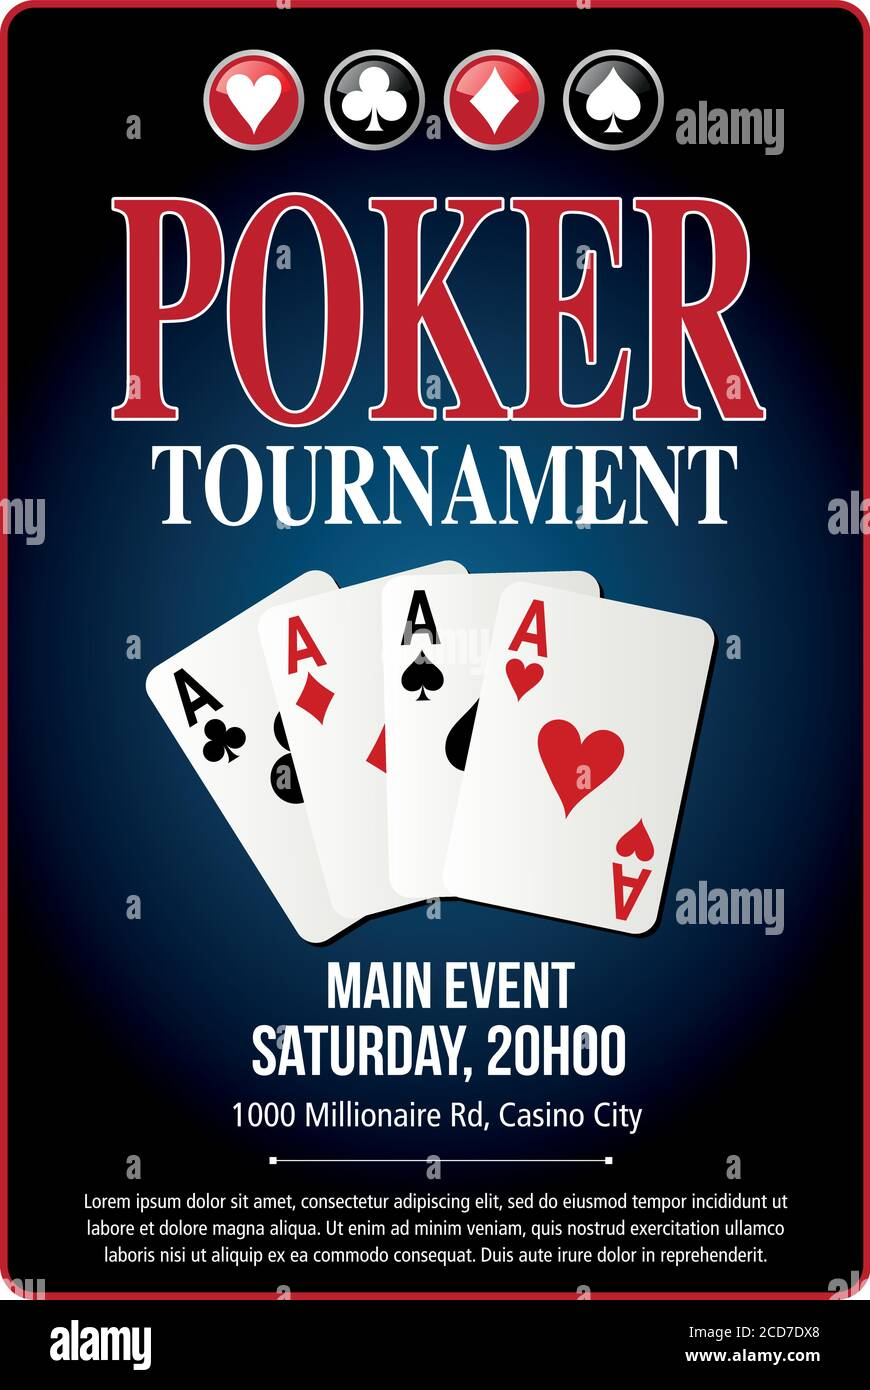 Casino Poker Tournament Poster Background Blue Template Design In Vector With Layer And Text Outlined Stock Vector Image Art Alamy